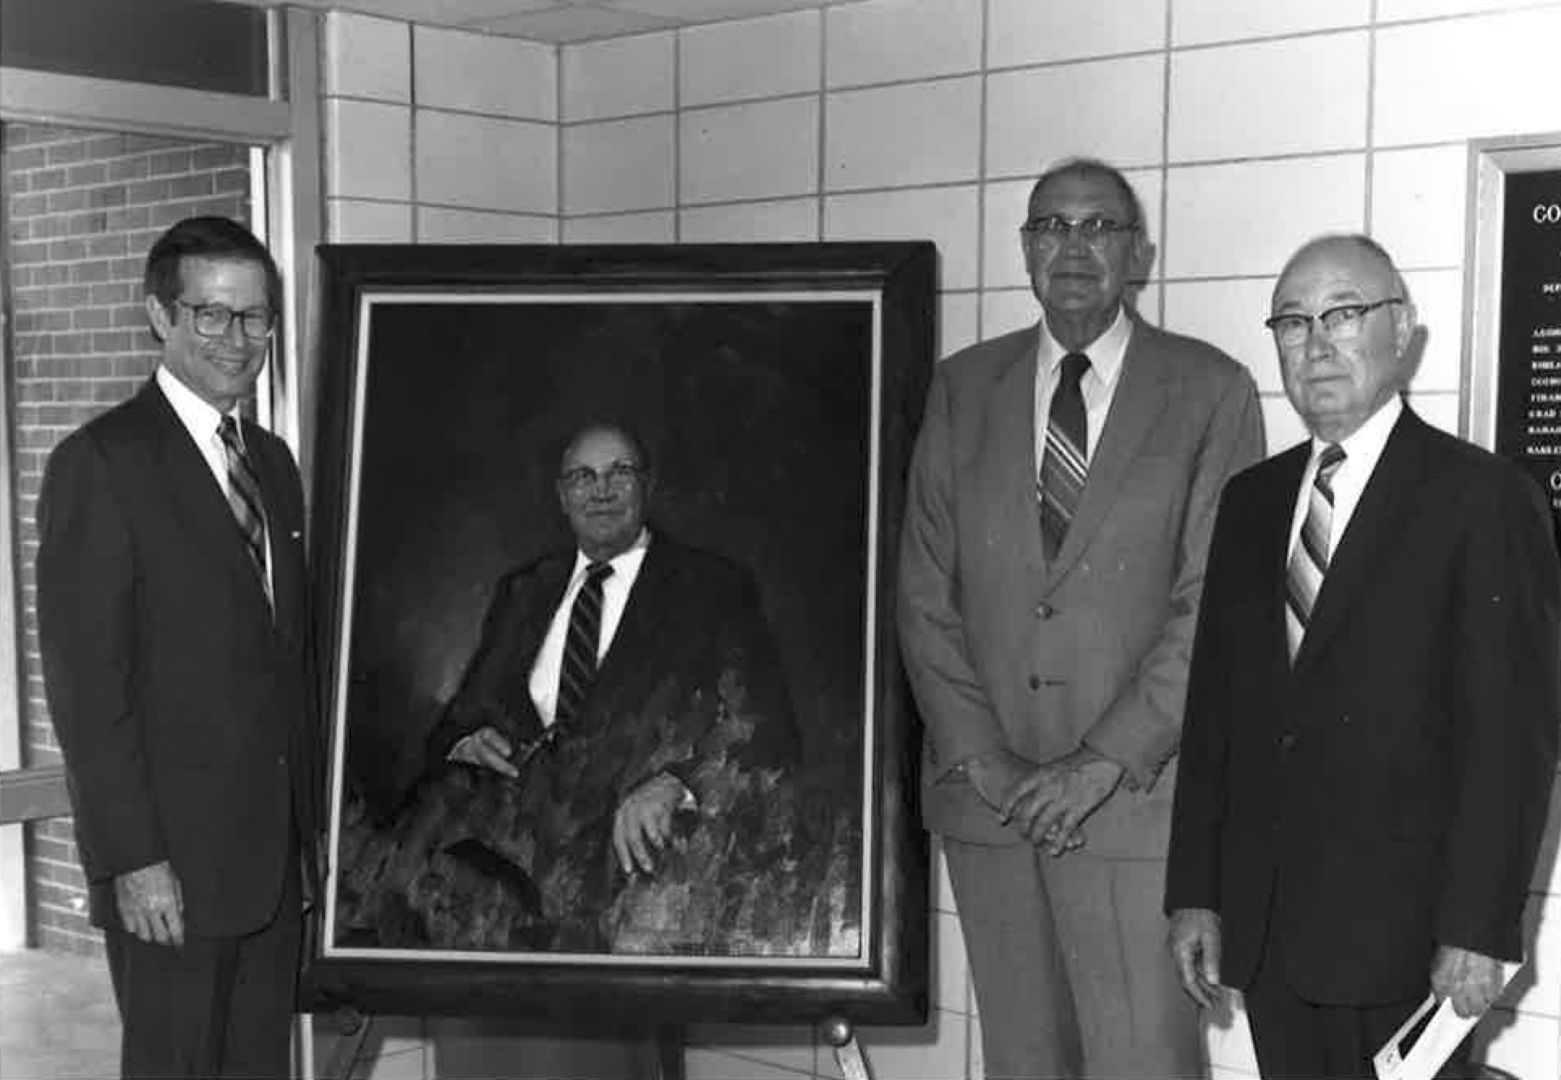 Men pictured with portrait of Dr. Joseph Greene